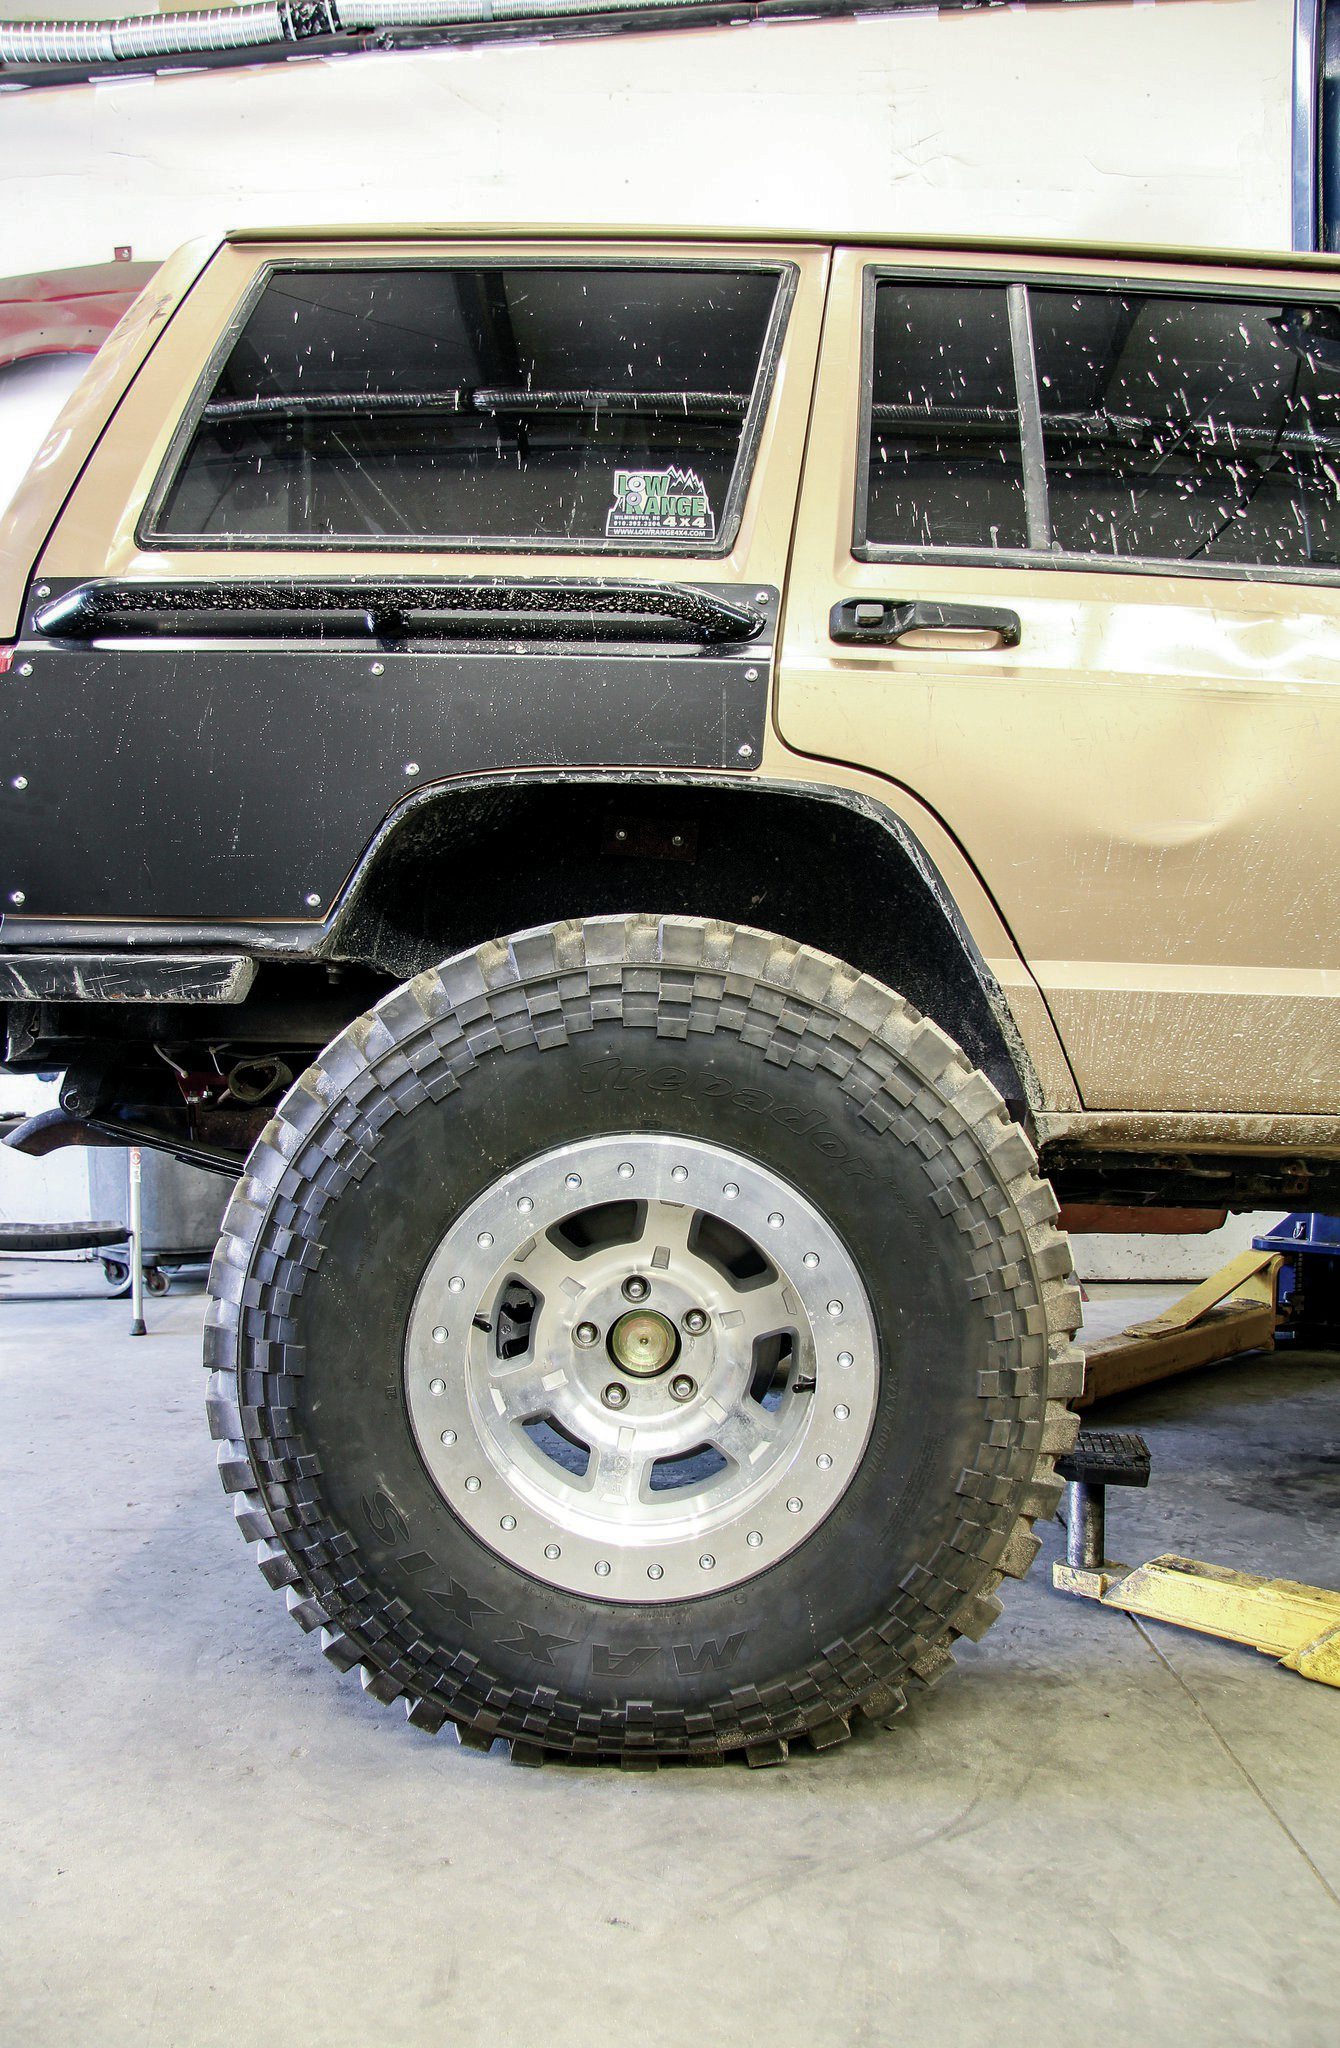 Here's a sneak peak at what we are looking at for a ride height. The Maxxis Trepador M8060 37x12.50R17 tires are mounted on 17x9 ATX Chamber Pro II beadlock wheels. The 4-inch backspacing doesn't quite push the tires completely out from under the XJ. So, we have a bit more trimming and bumpstop engineering to do to maintain the 4.5-inch lift height.